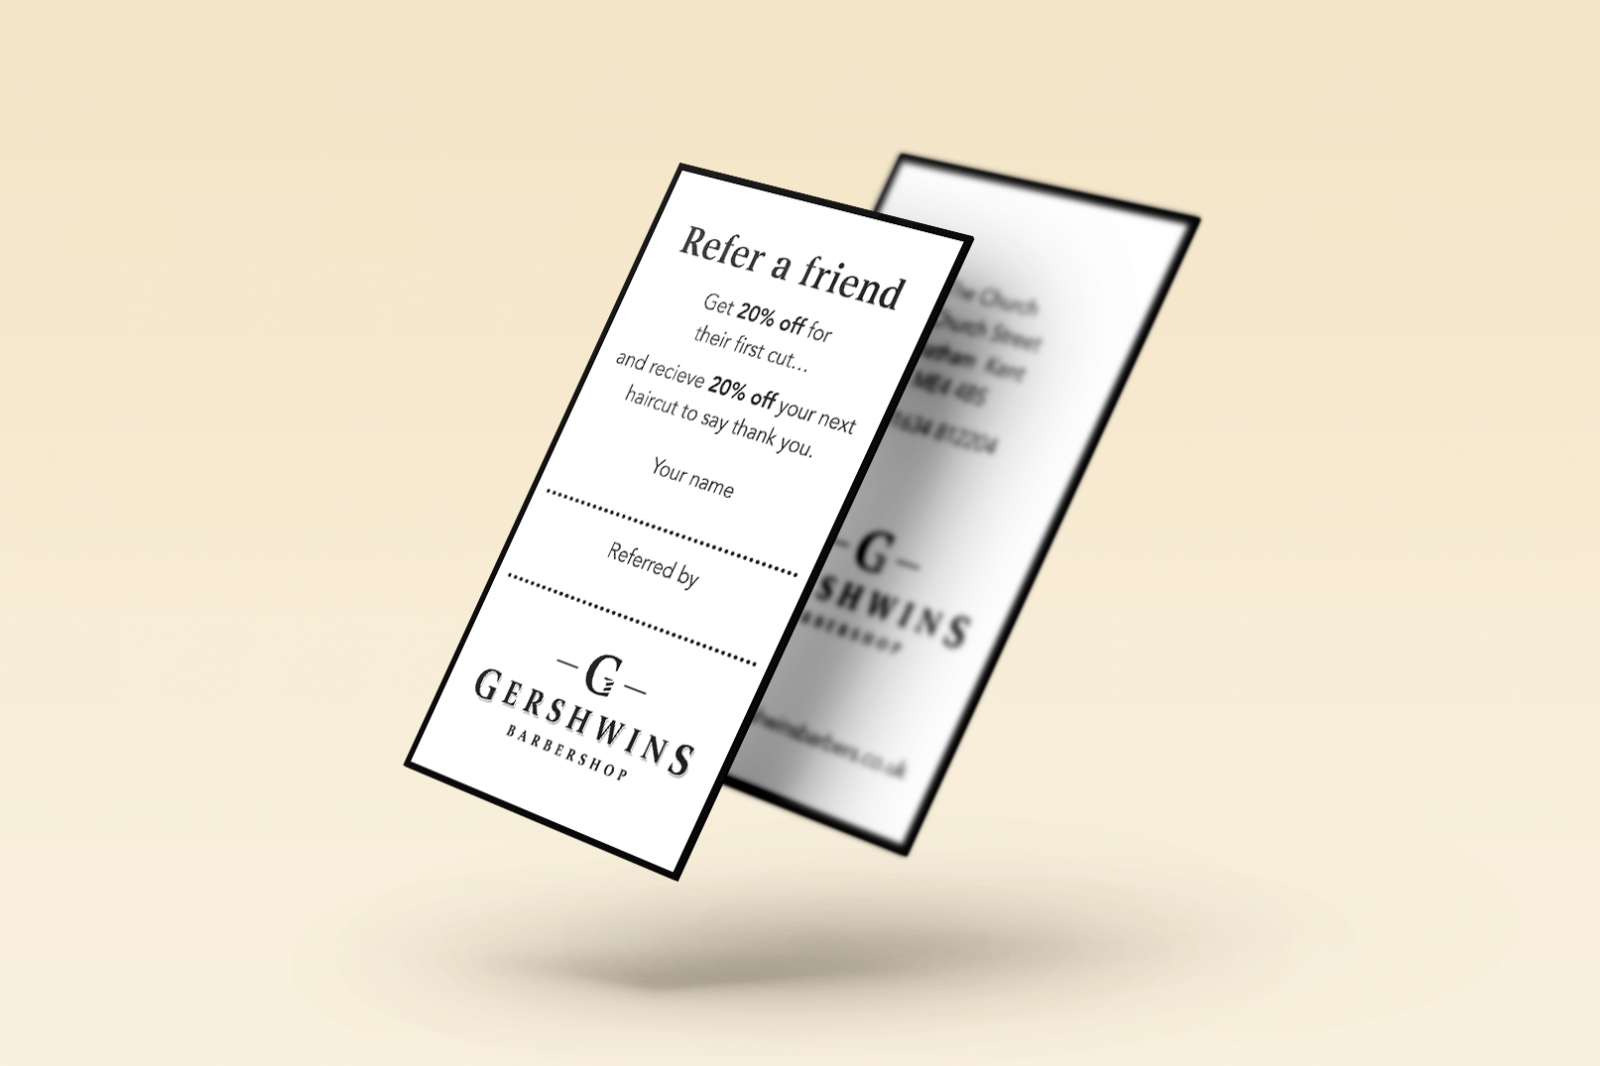 Business-Gershwins-card-design-agency-graphic-design-canterbury.png